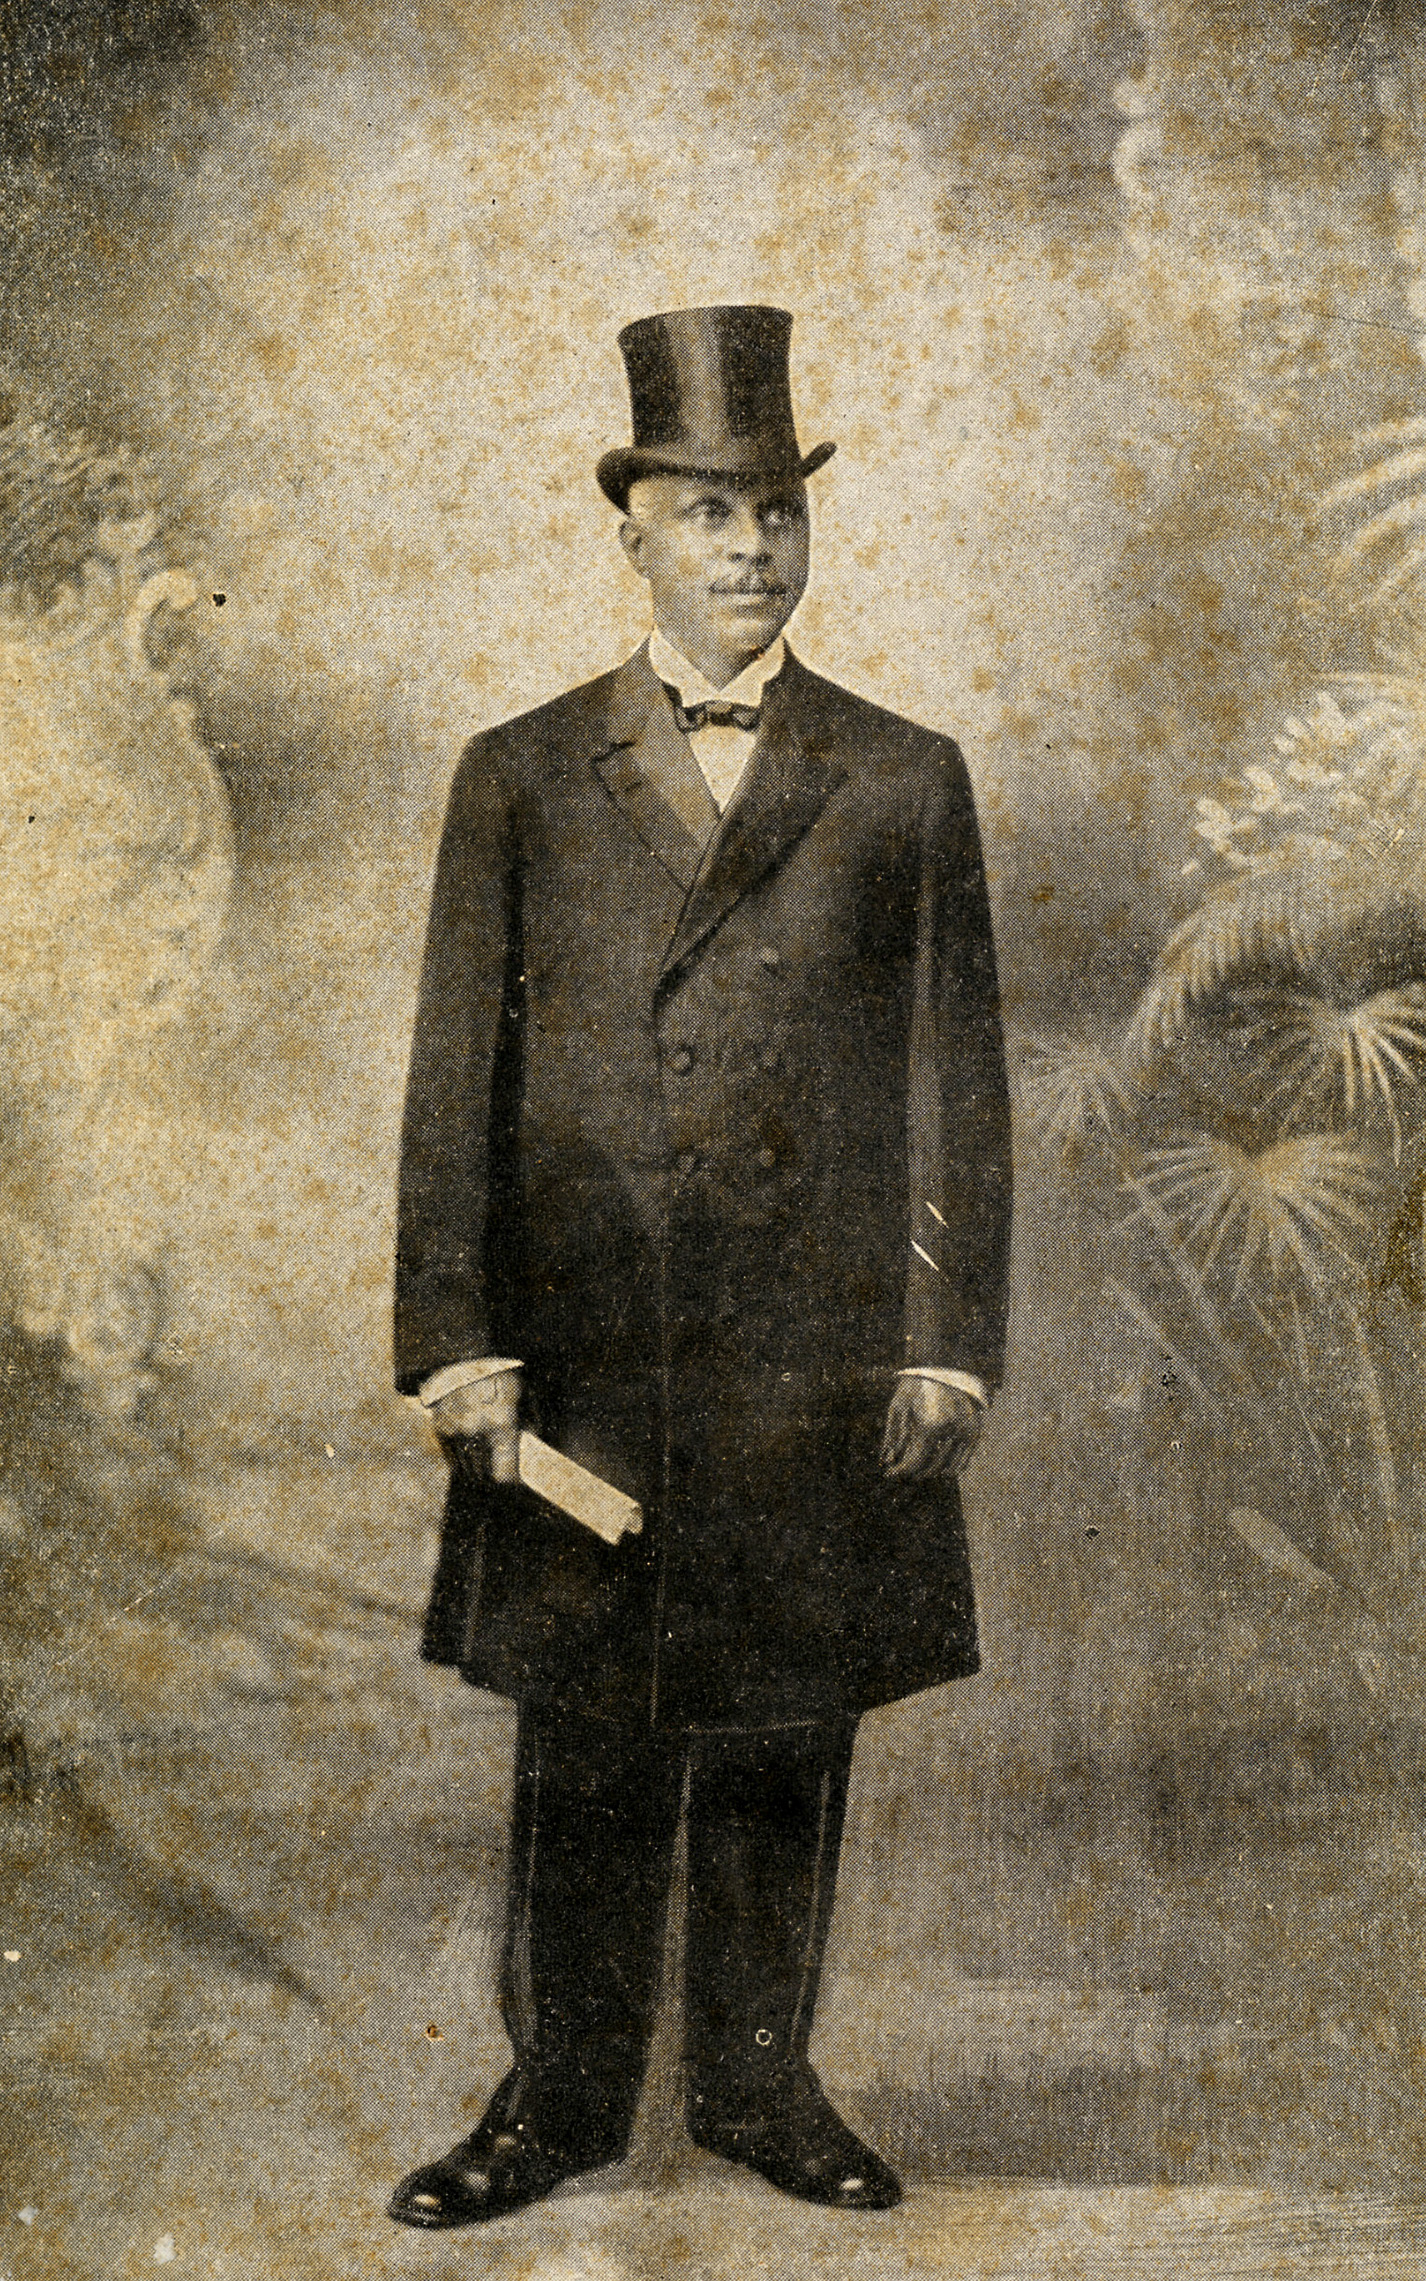 Taylor wearing a dark suit and top hat and holding what looks like a folded paper.